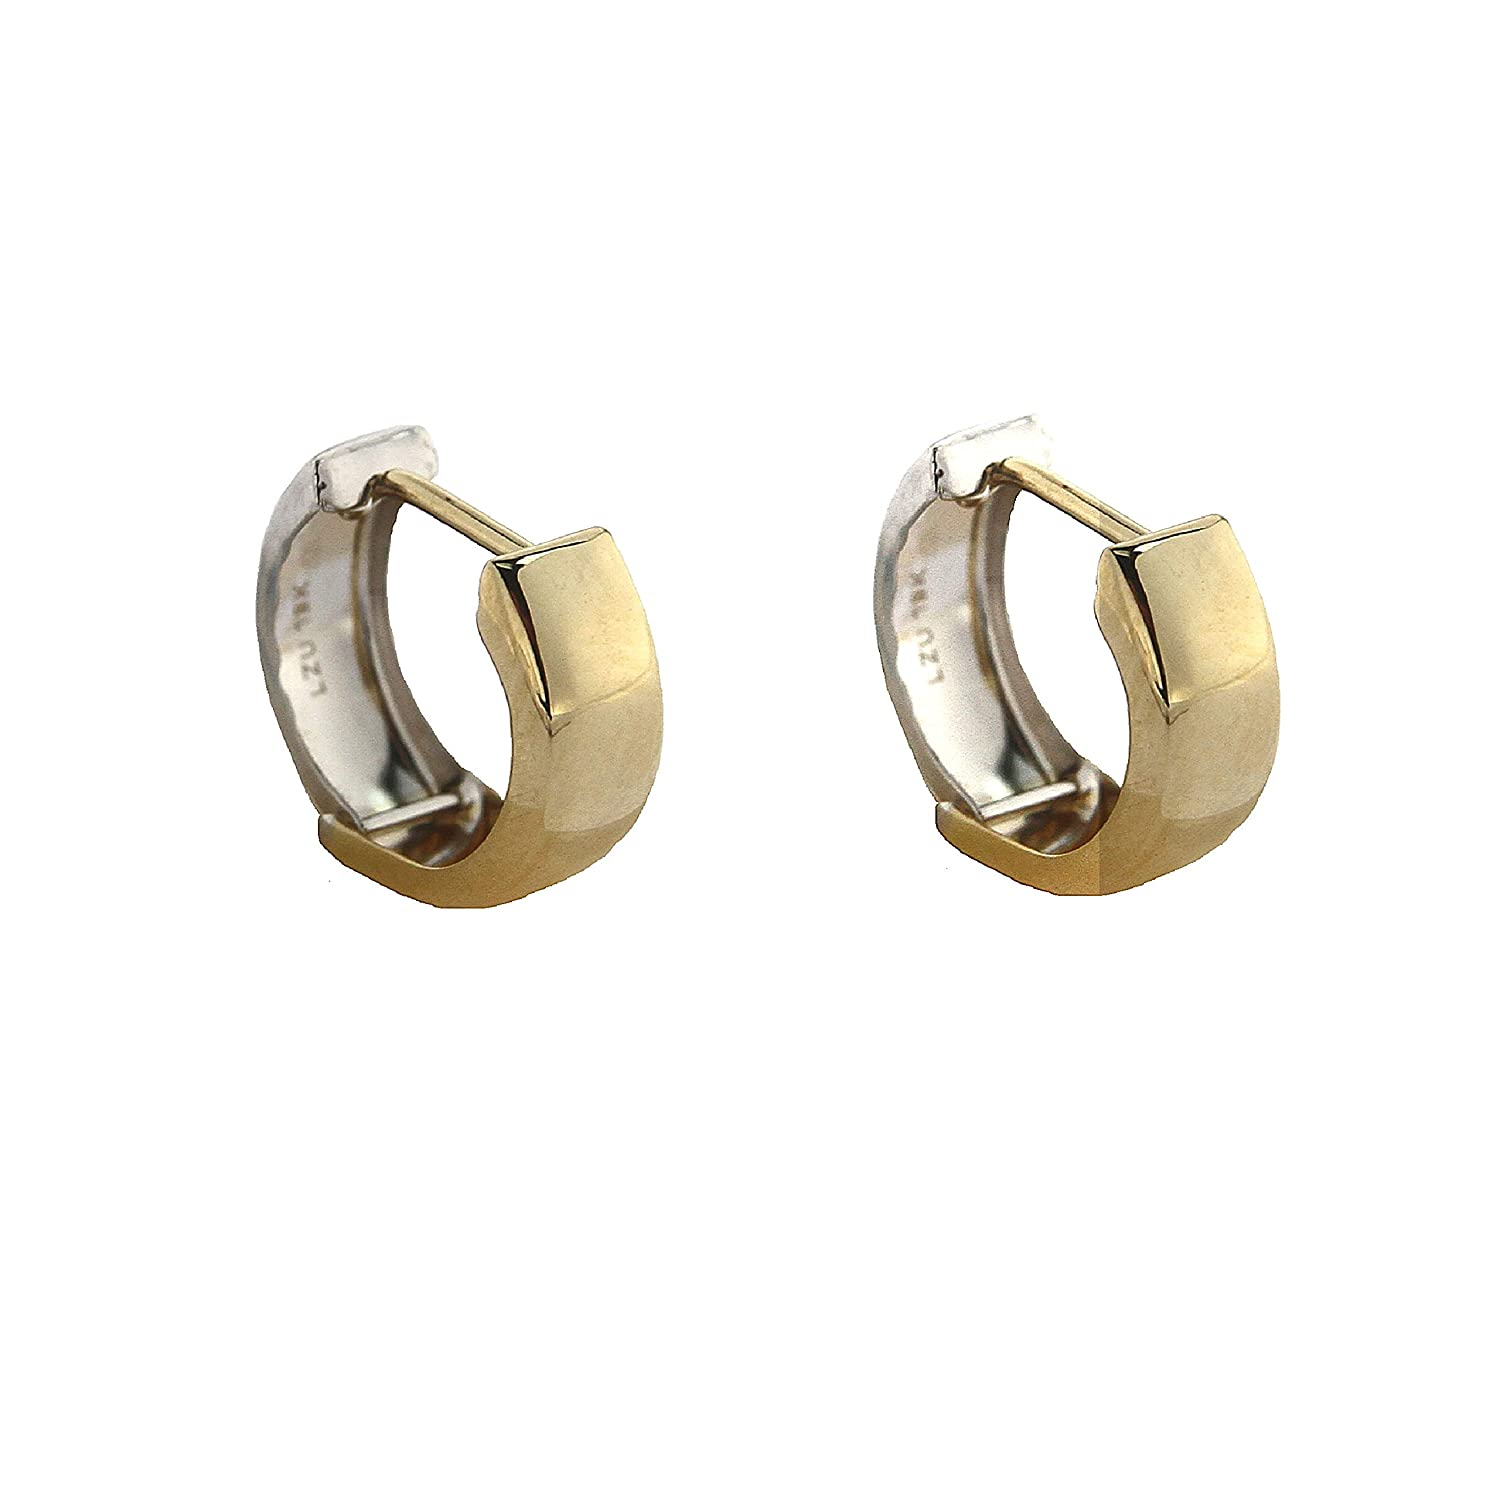 18K Two Tone Gold Polished Hinged Hoop Earrings 0.50 inch diameter x 0.19 inch